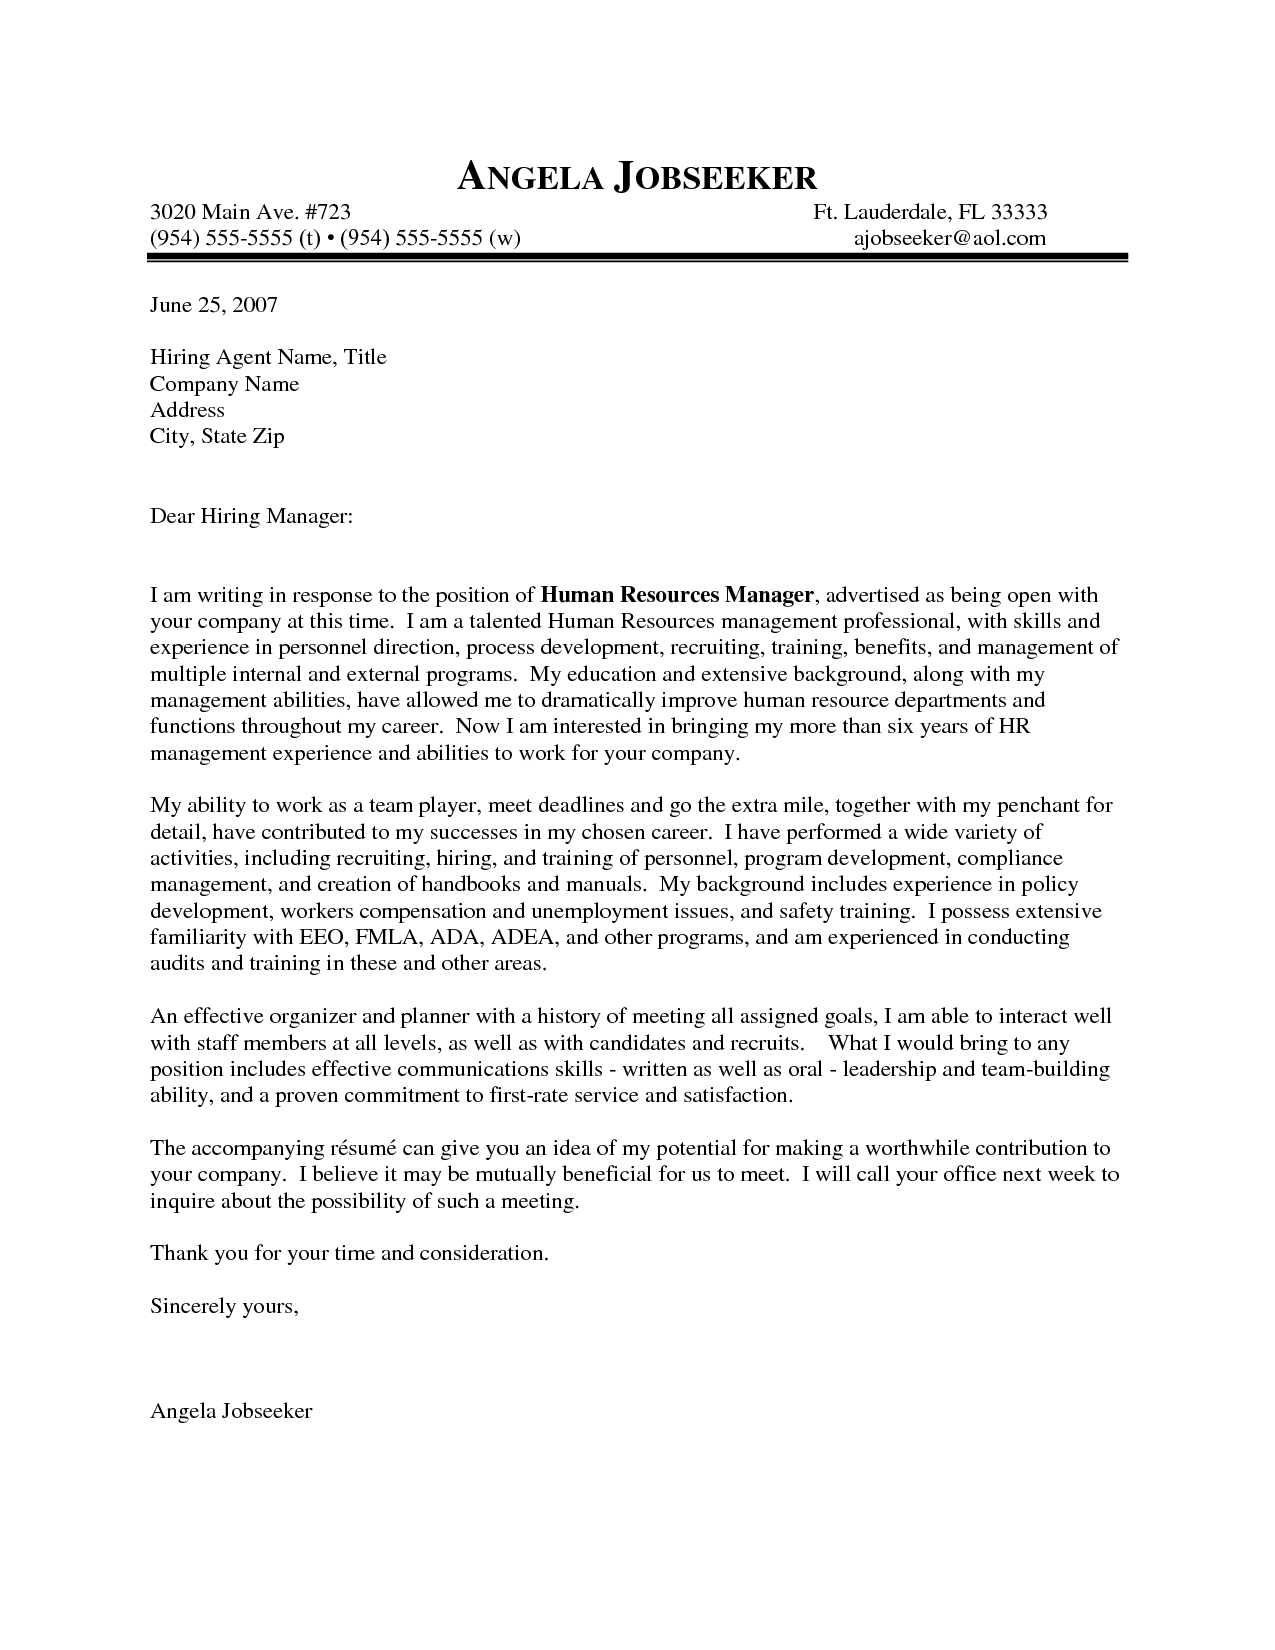 Outstanding Cover Letter Examples | HR Manager Cover Letter ...